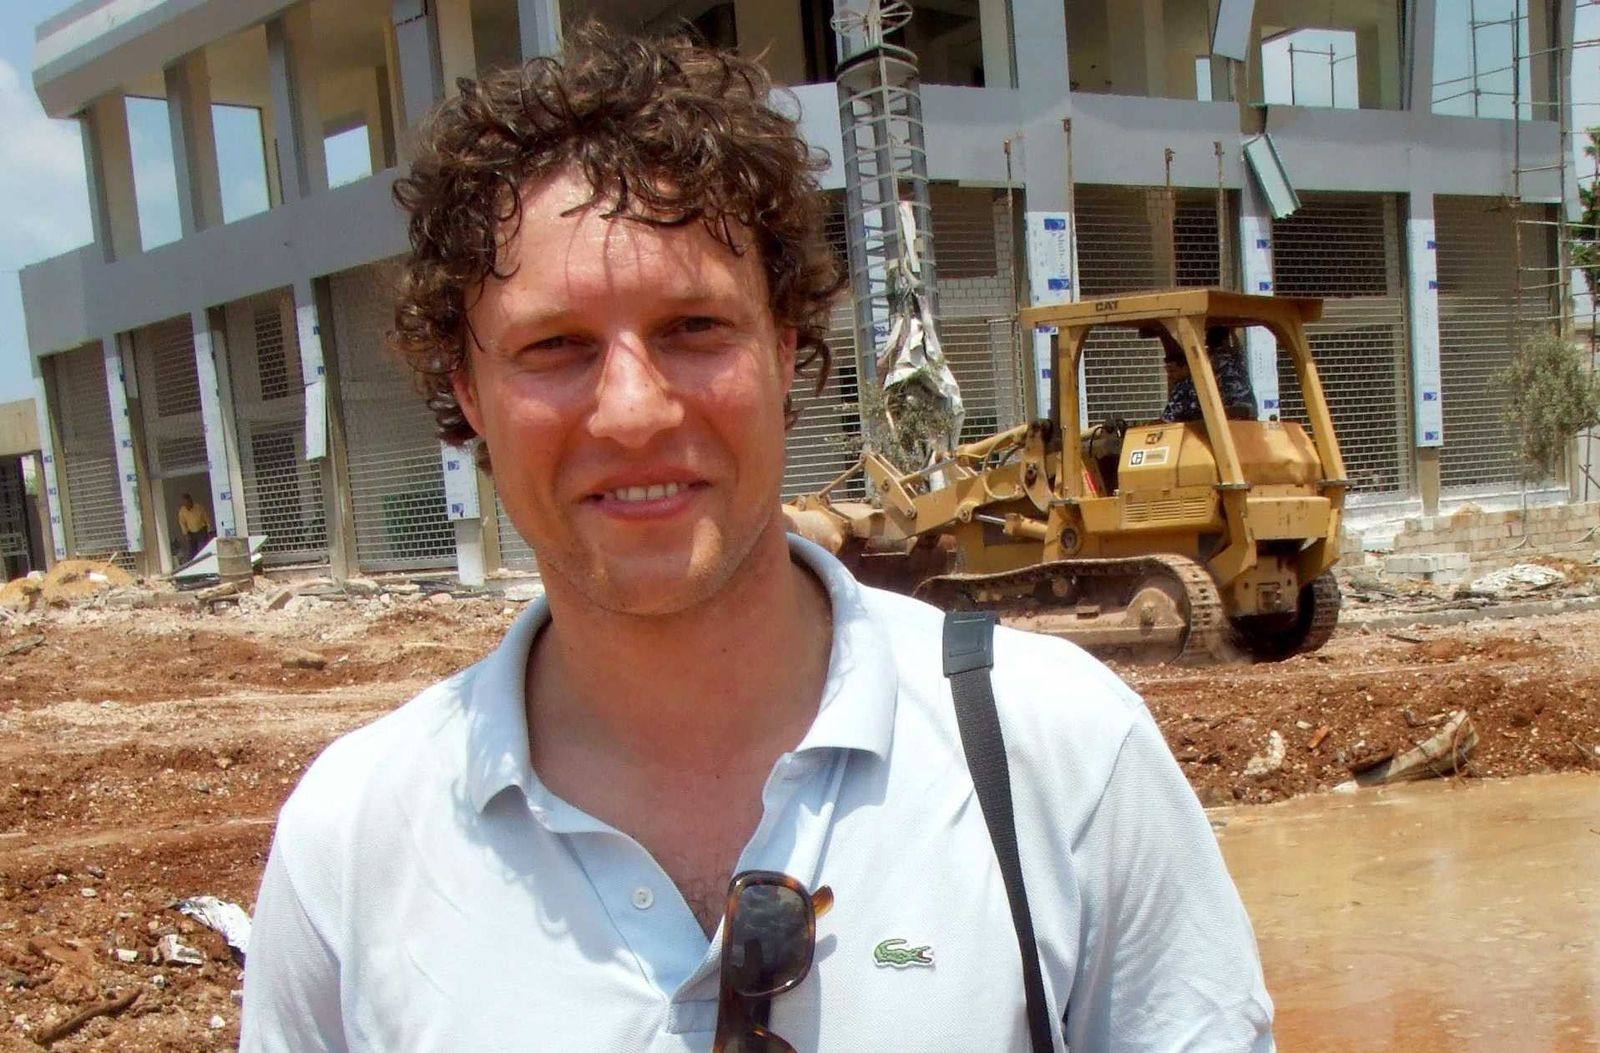 Jeroen Oerlemans has been killed by an IS sniper in Sirte